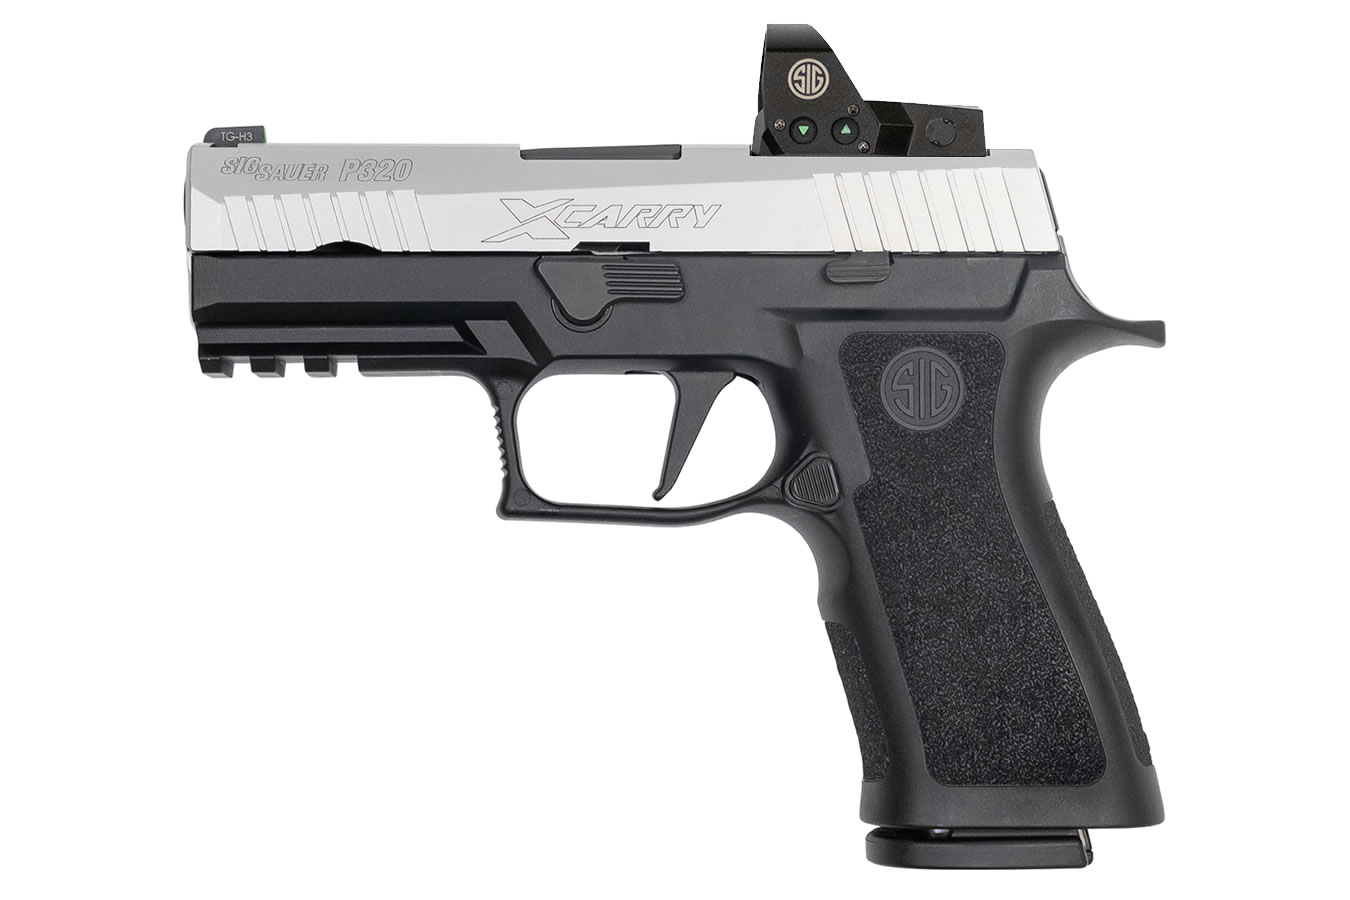 No. 1 Best Selling: SIG SAUER P320 X-CARRY 9MM BLK POLYMER FRAME STAINLESS SLIDE 17 ROUND MAGS